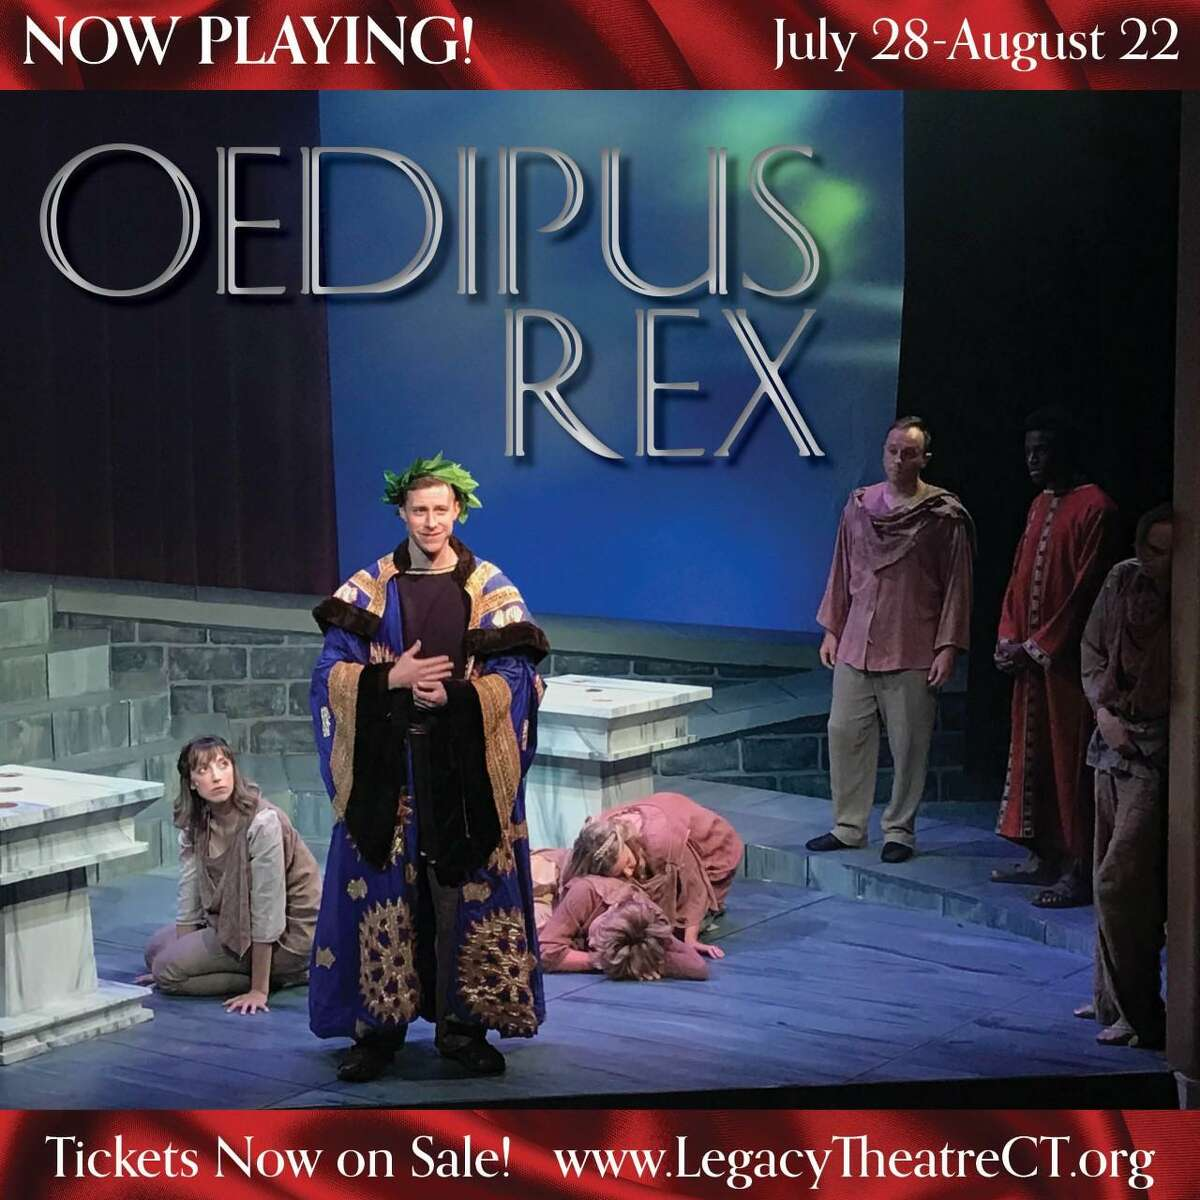 """The newly opened Legacy Theatre of Stony Creek, Branford is offering audiences the unique opportunity to be carried dramatically to a land far away and long ago for a rare viewing of """"Oedipus Rex,"""" a timeless classic."""